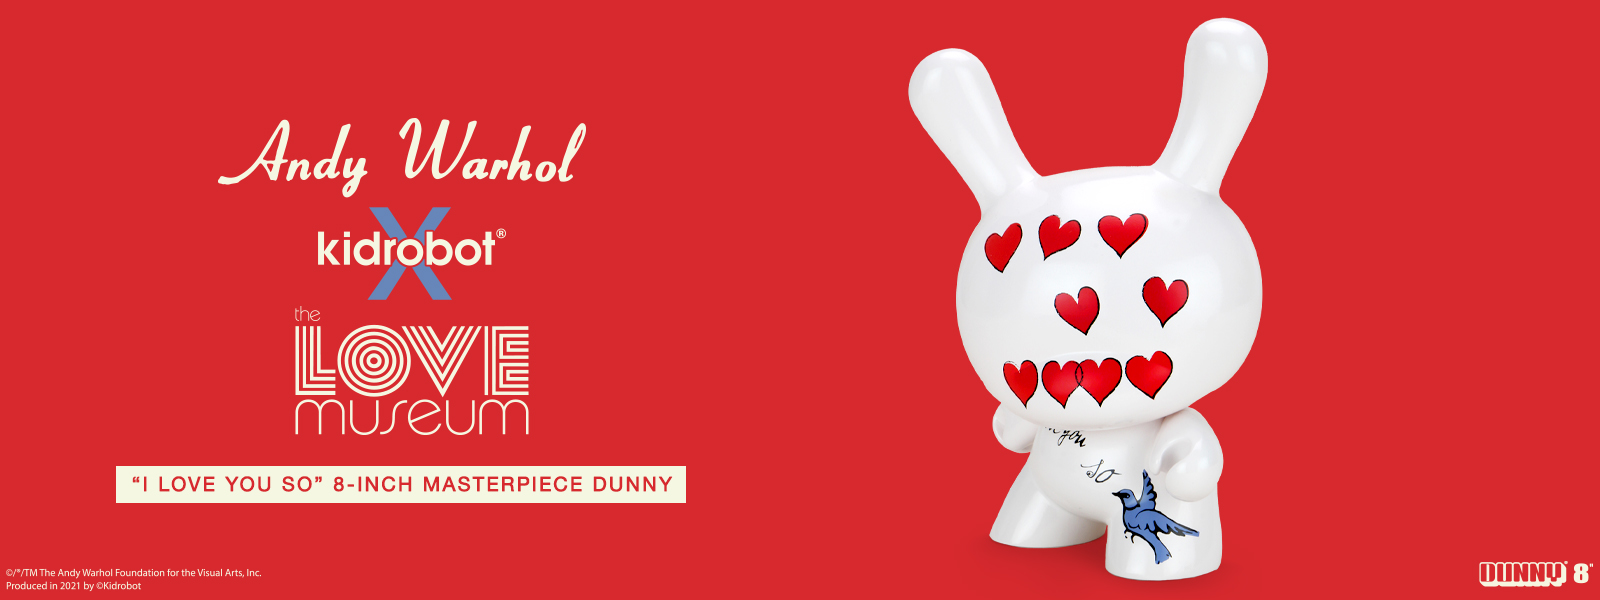 "Andy Warhol 8"" Masterpiece ""I Love You So"" Dunny Drops January 22nd at 10am MT / 12pm ET on Kidrobot.com"